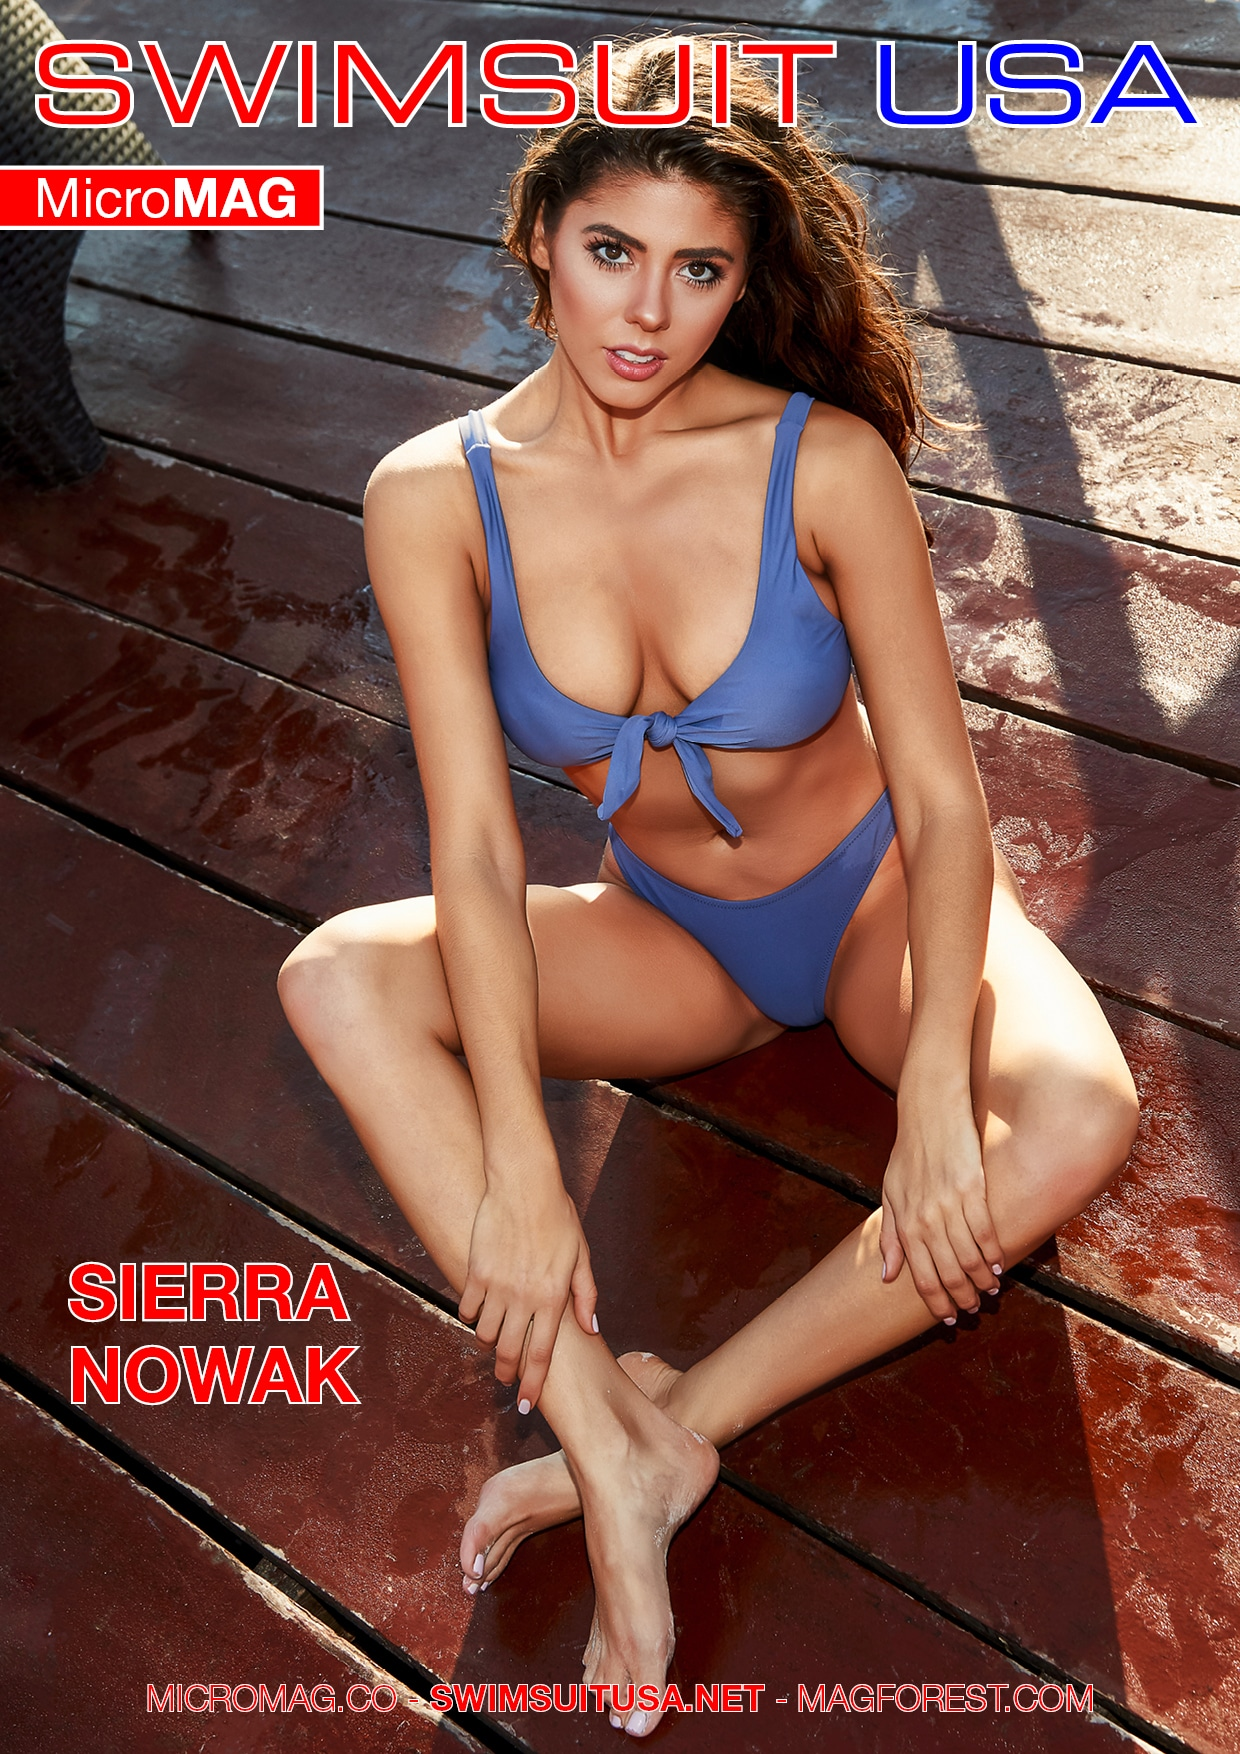 Swimsuit USA MicroMAG - Anya Gavin - Issue 2 4